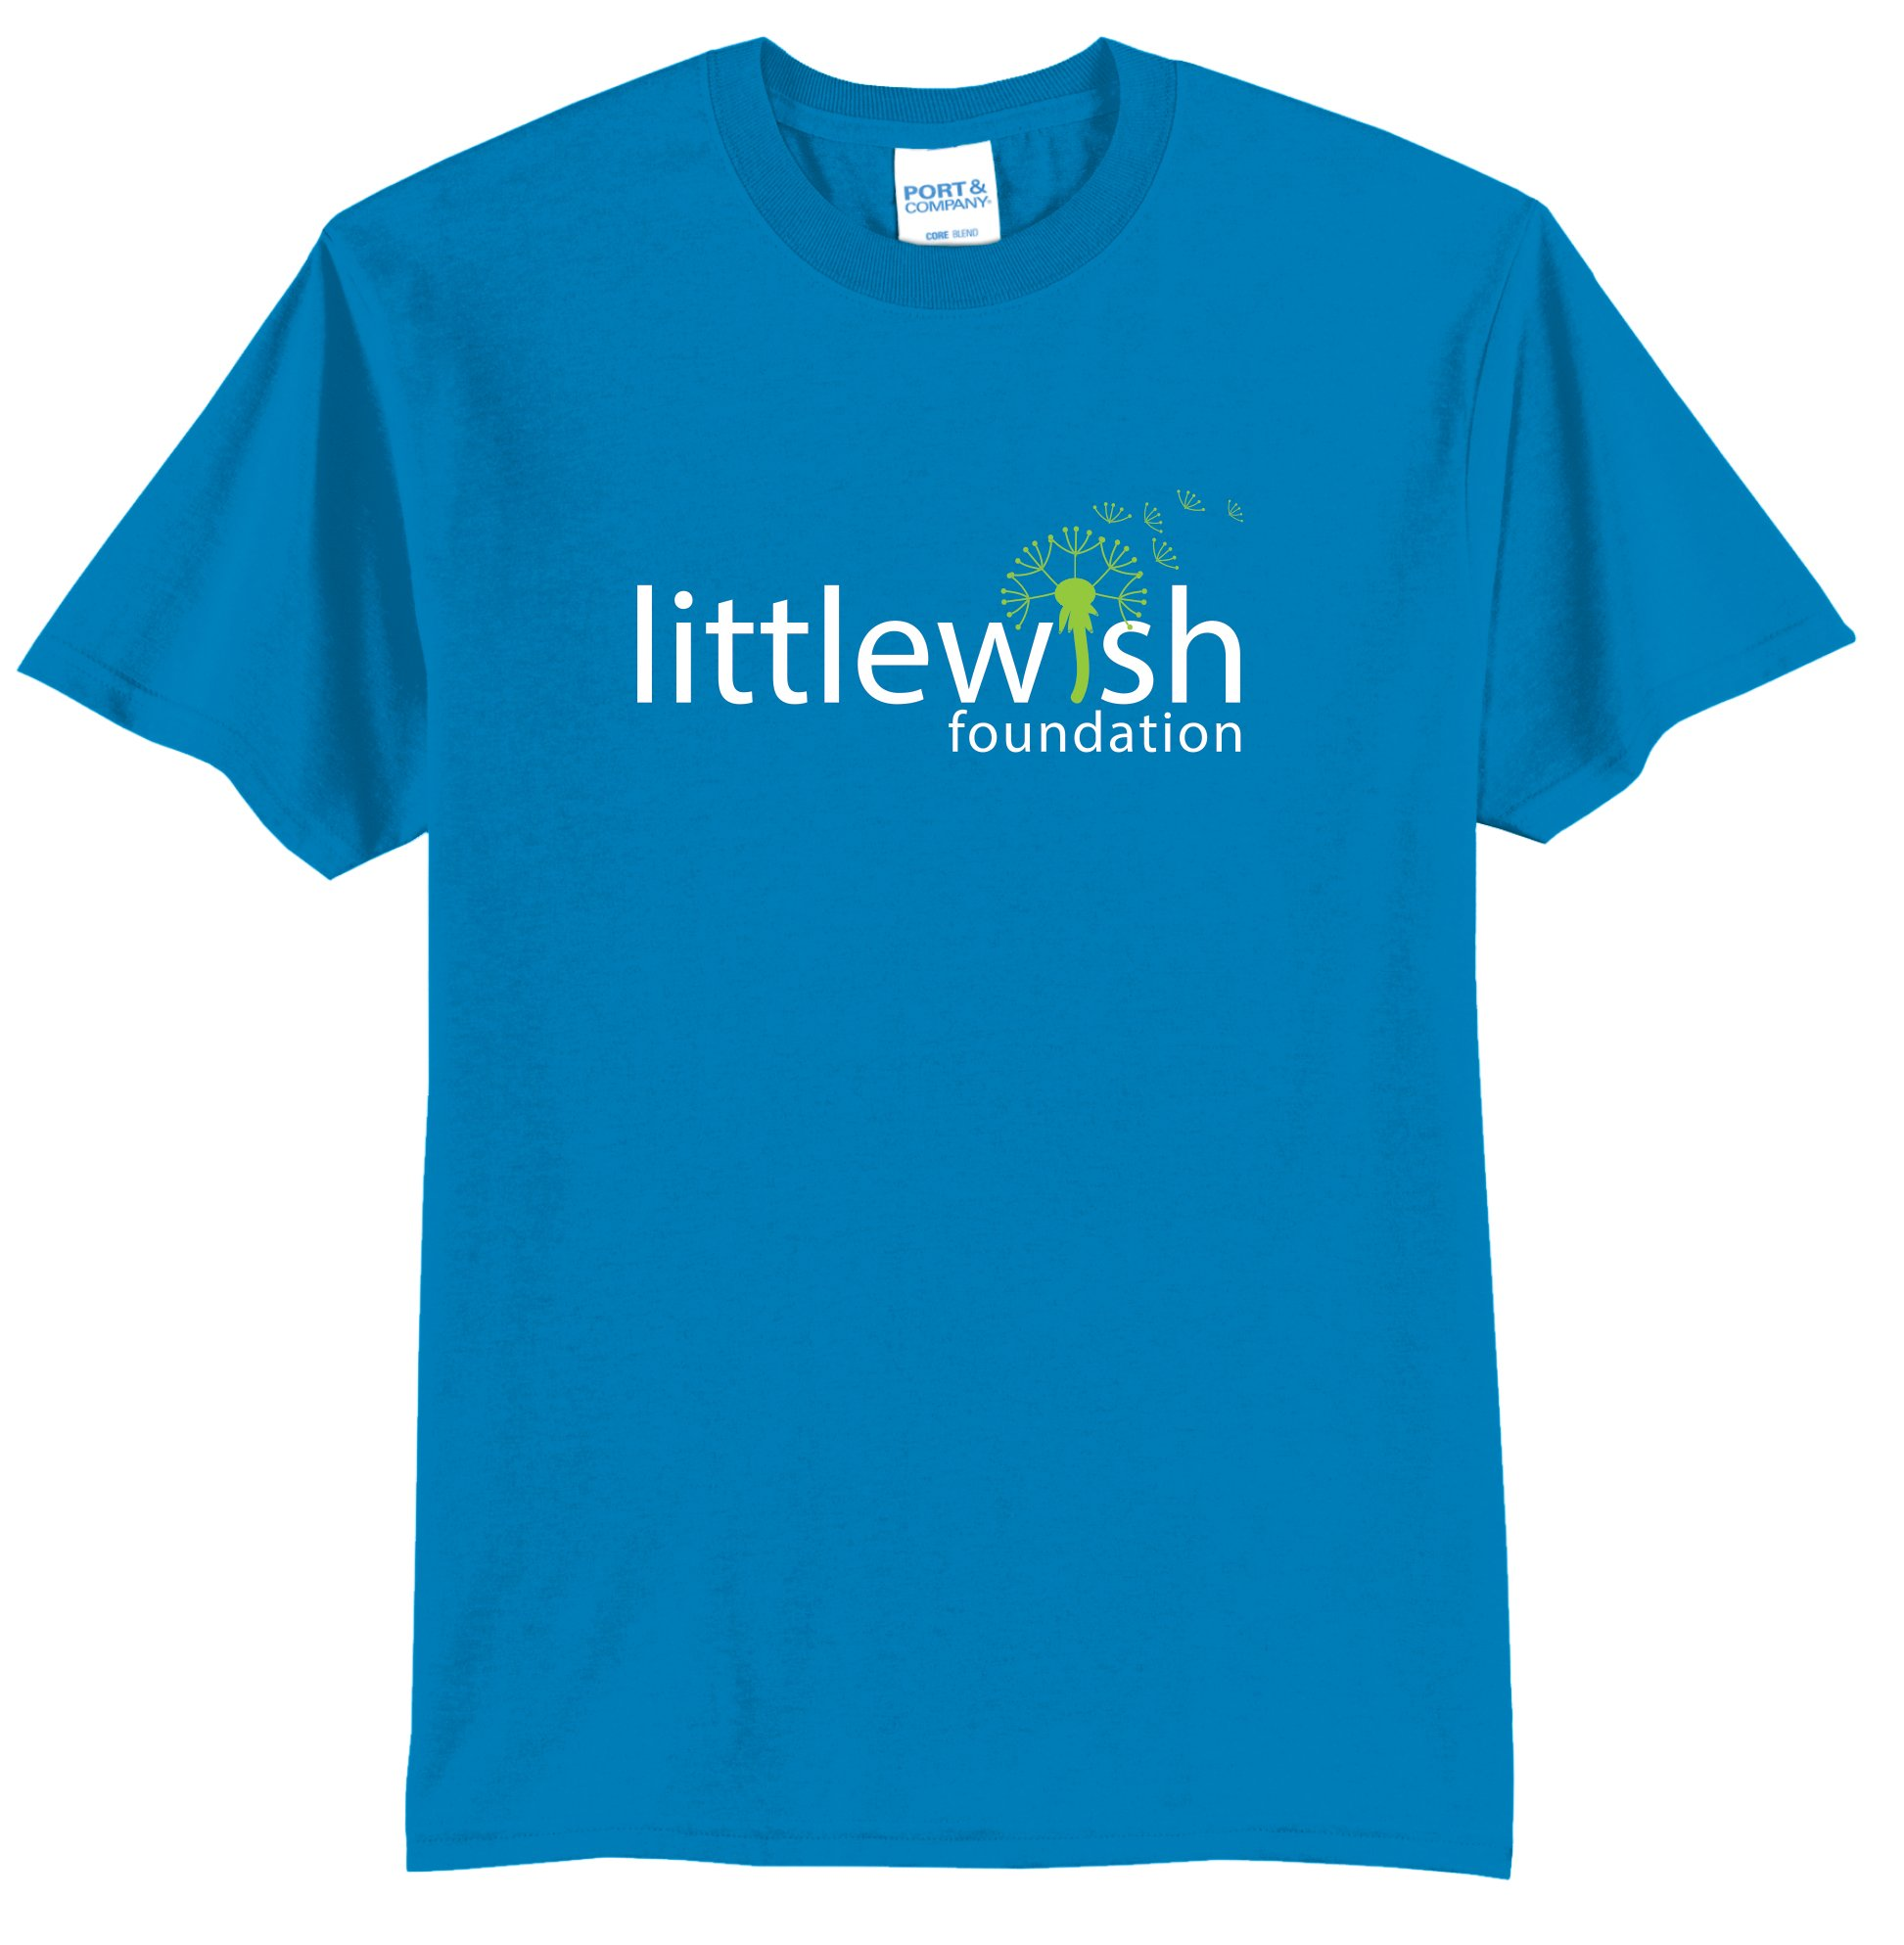 Little Wish Foundation Adult T-shirt 00001